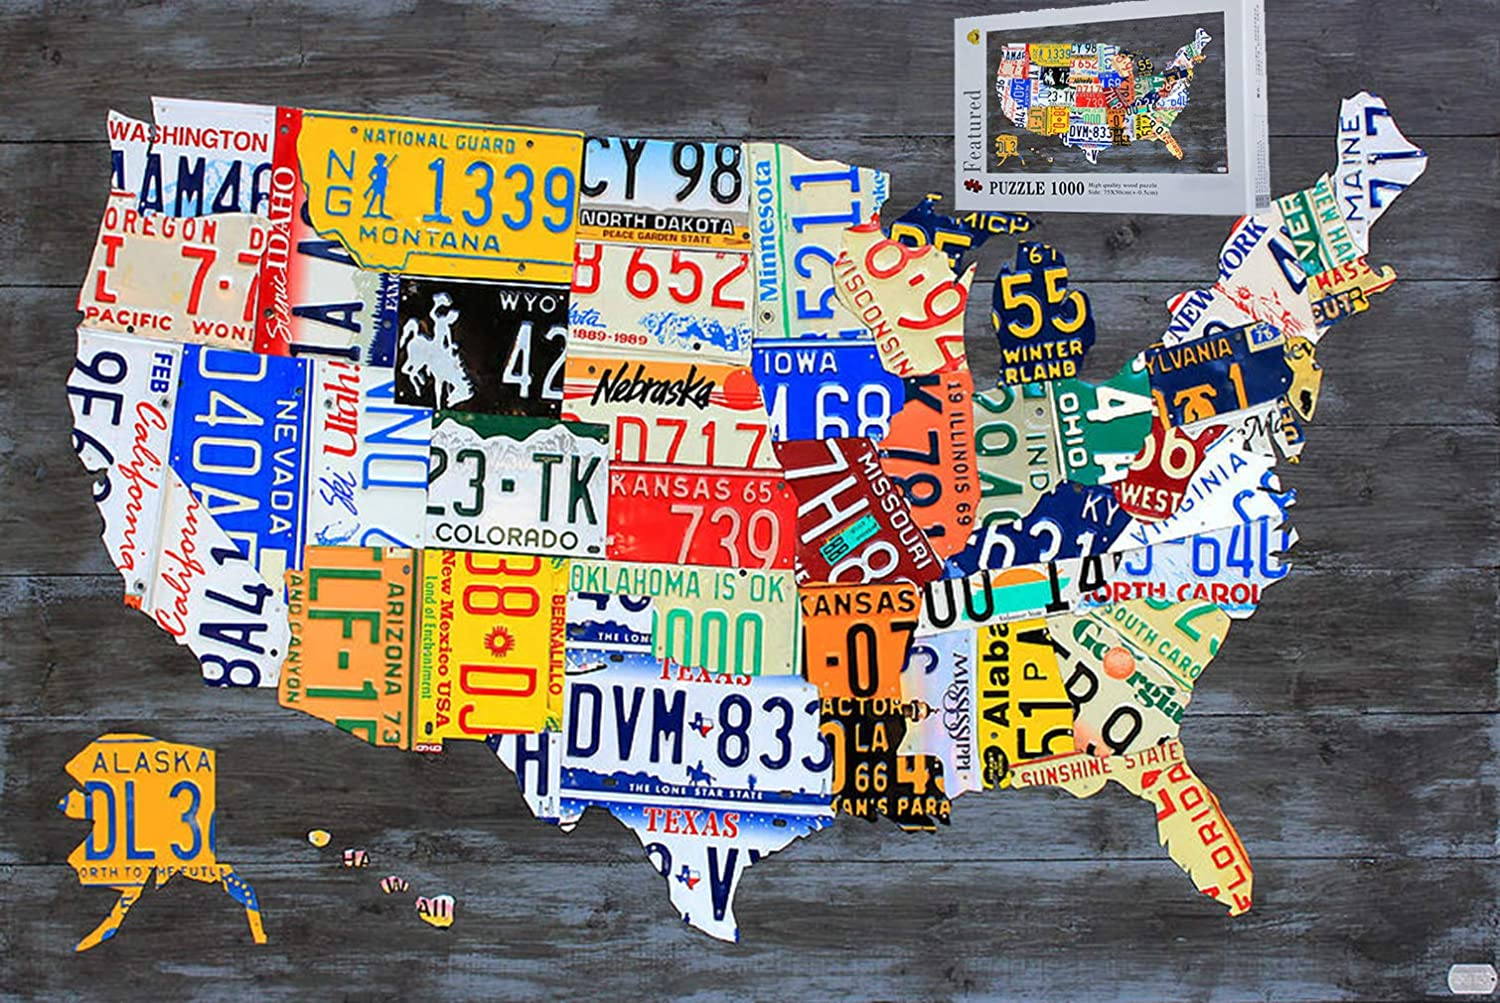 Map Of Us License Plates Amazon.com: Geekpuz License Plate Map USA Jigsaw Puzzles 1000